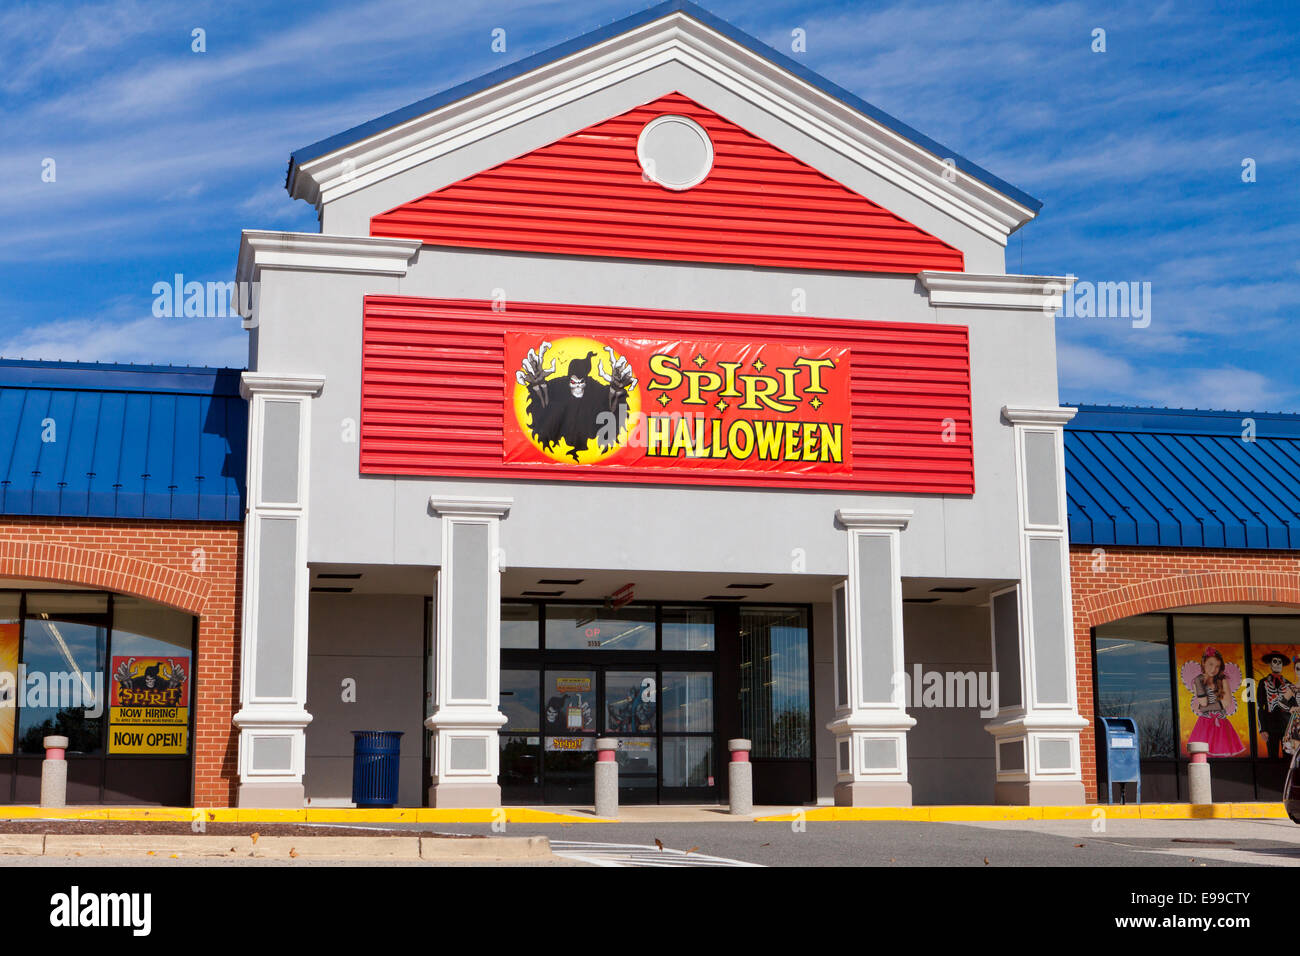 halloween store stock photos & halloween store stock images - alamy